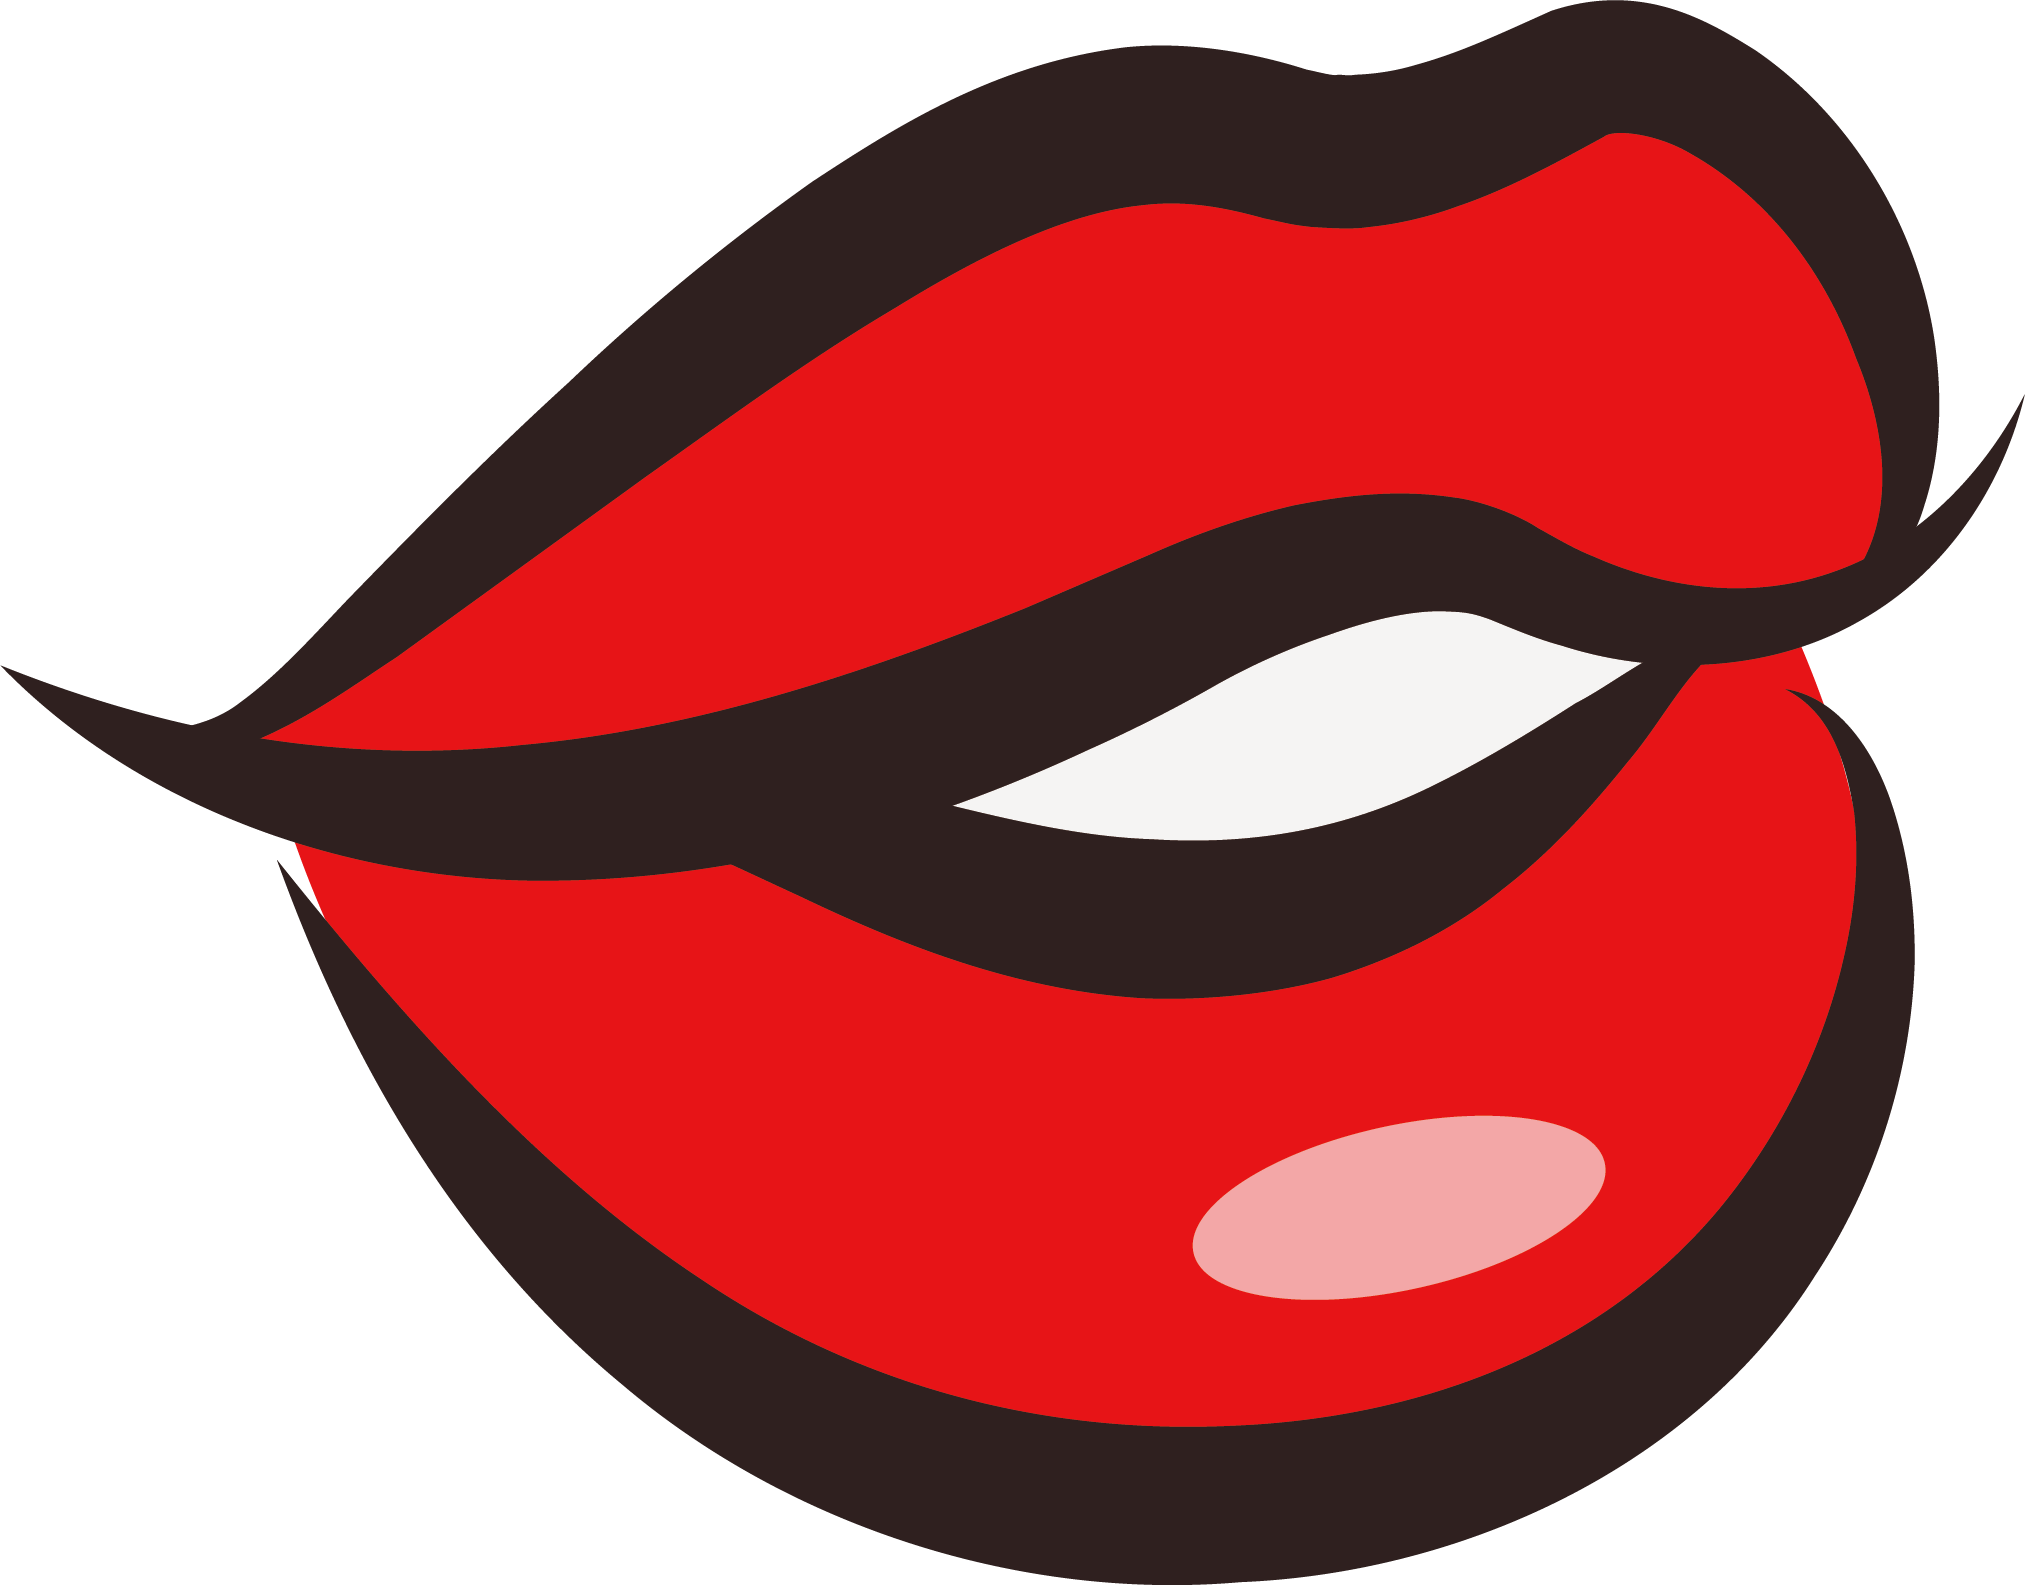 Lips clipart anamated. Kissing at getdrawings com